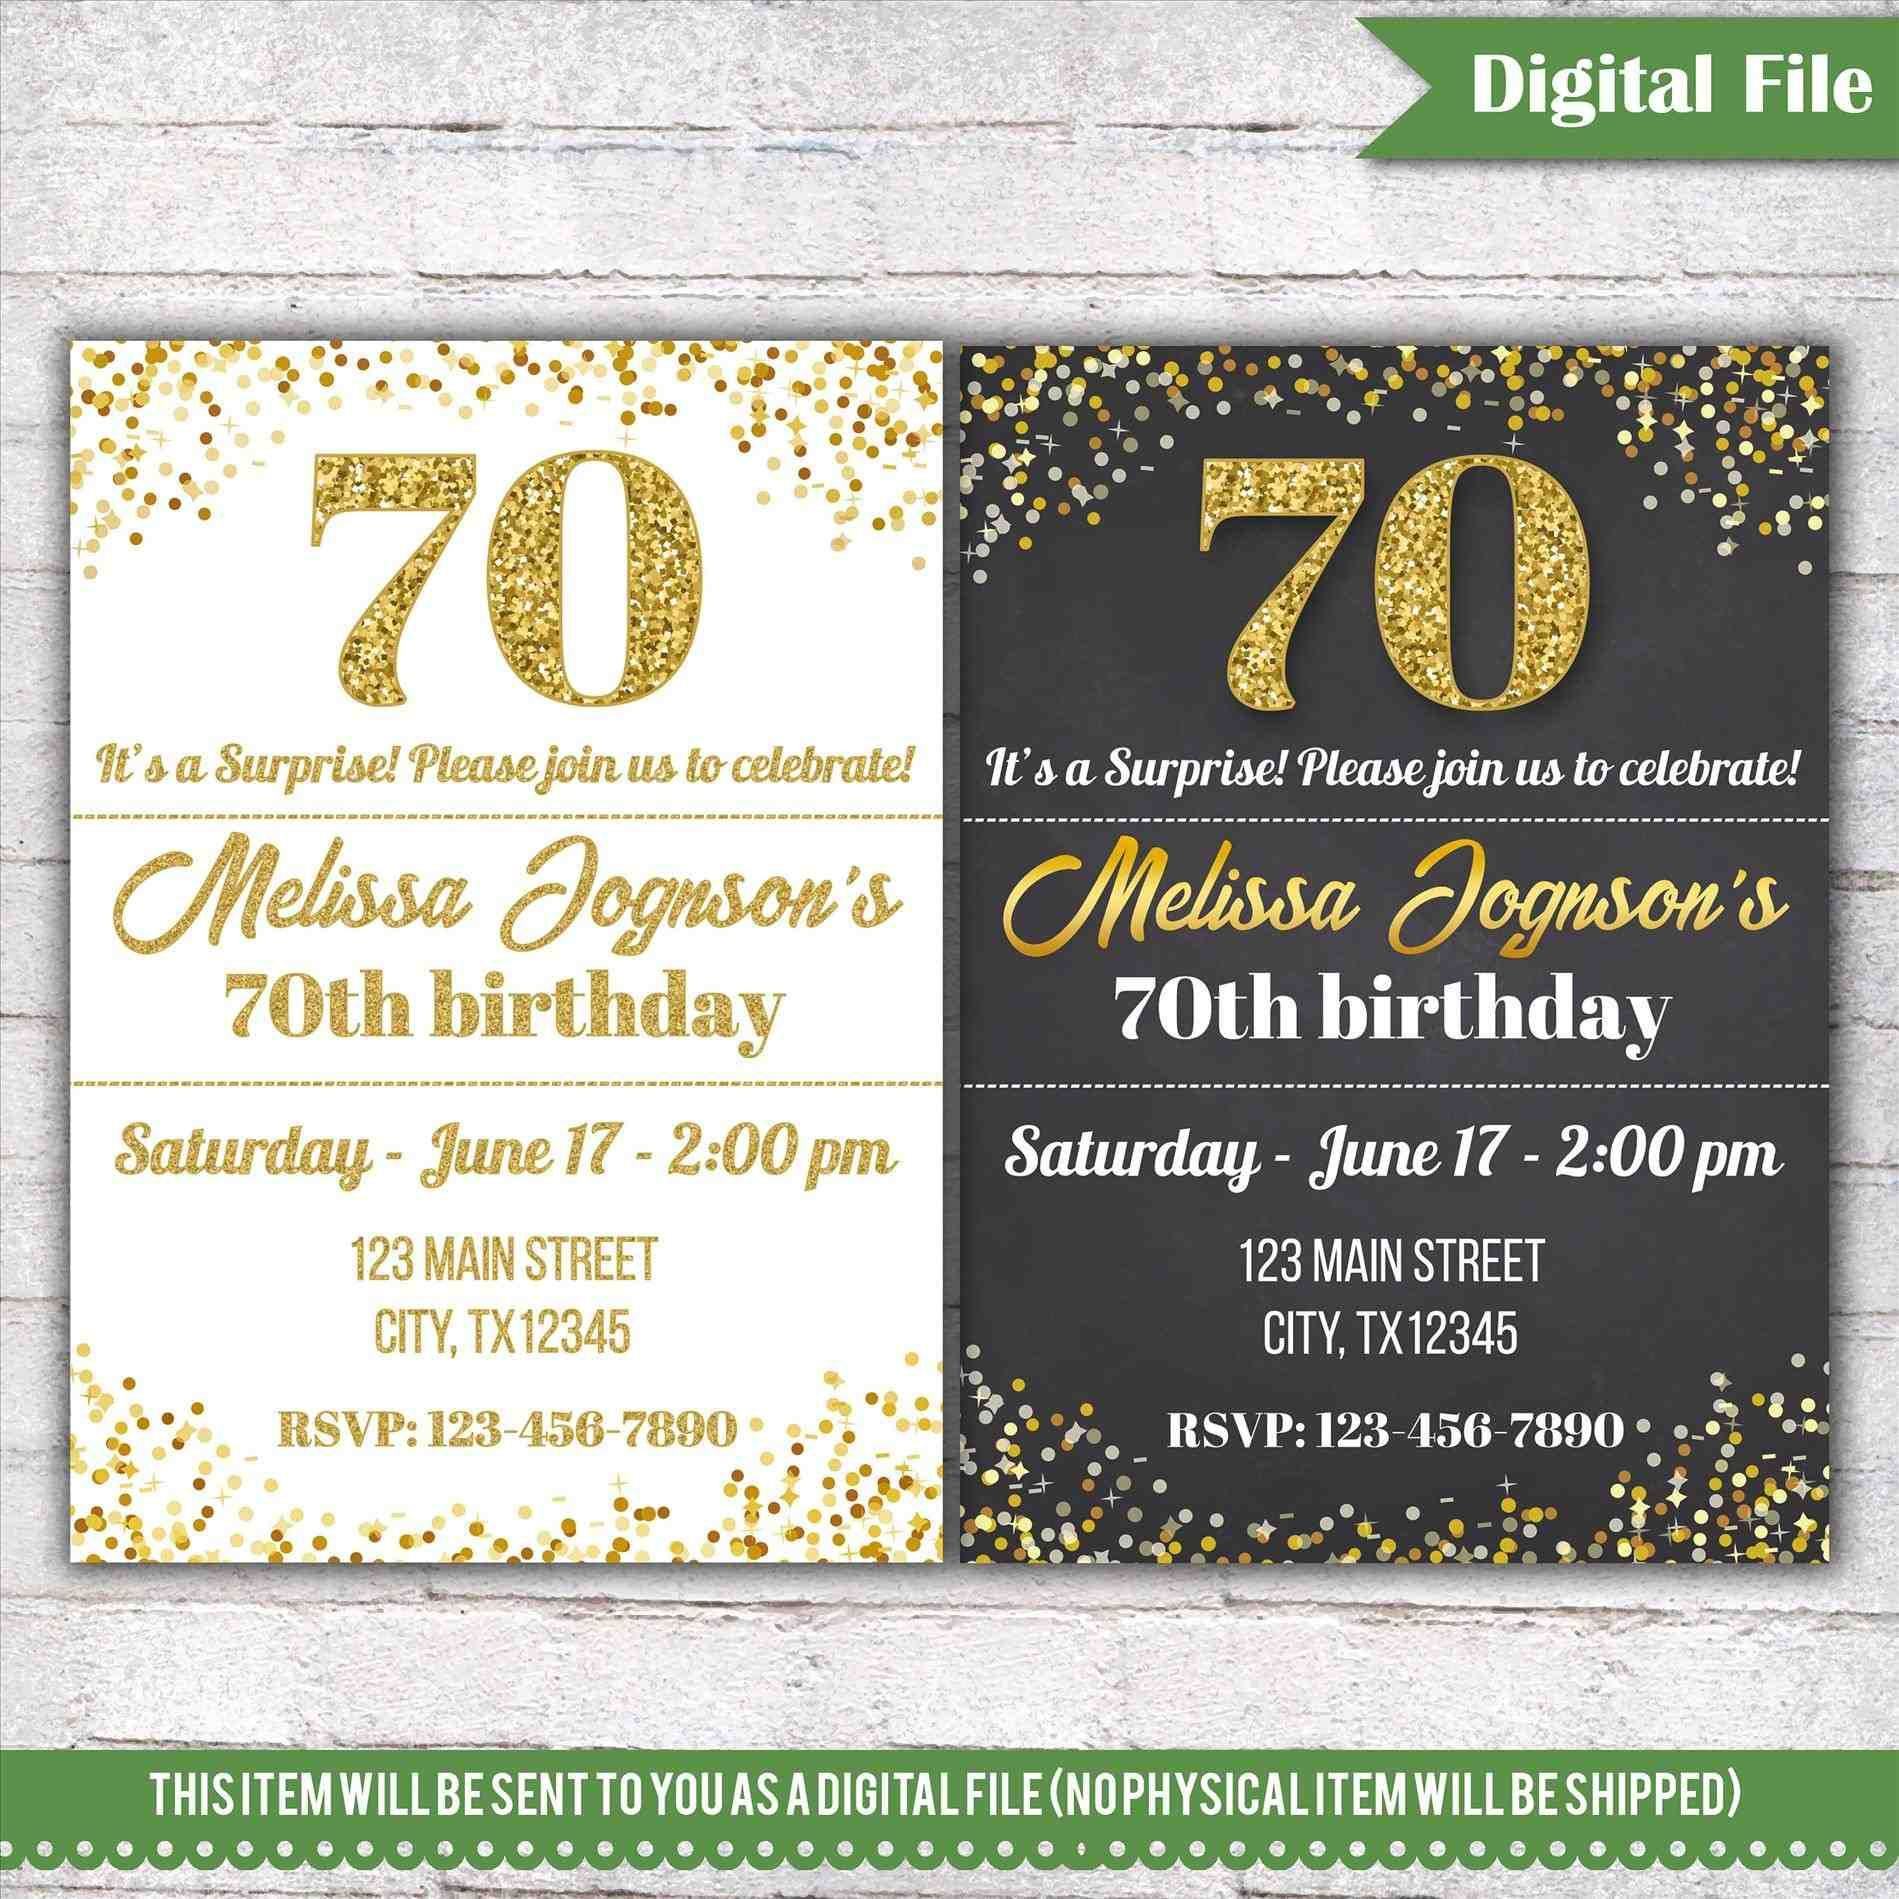 Full Size Of Template50th Birthday Invitations For Him Templates Together With 30th Party Share On Twitter Facebook Google 70th